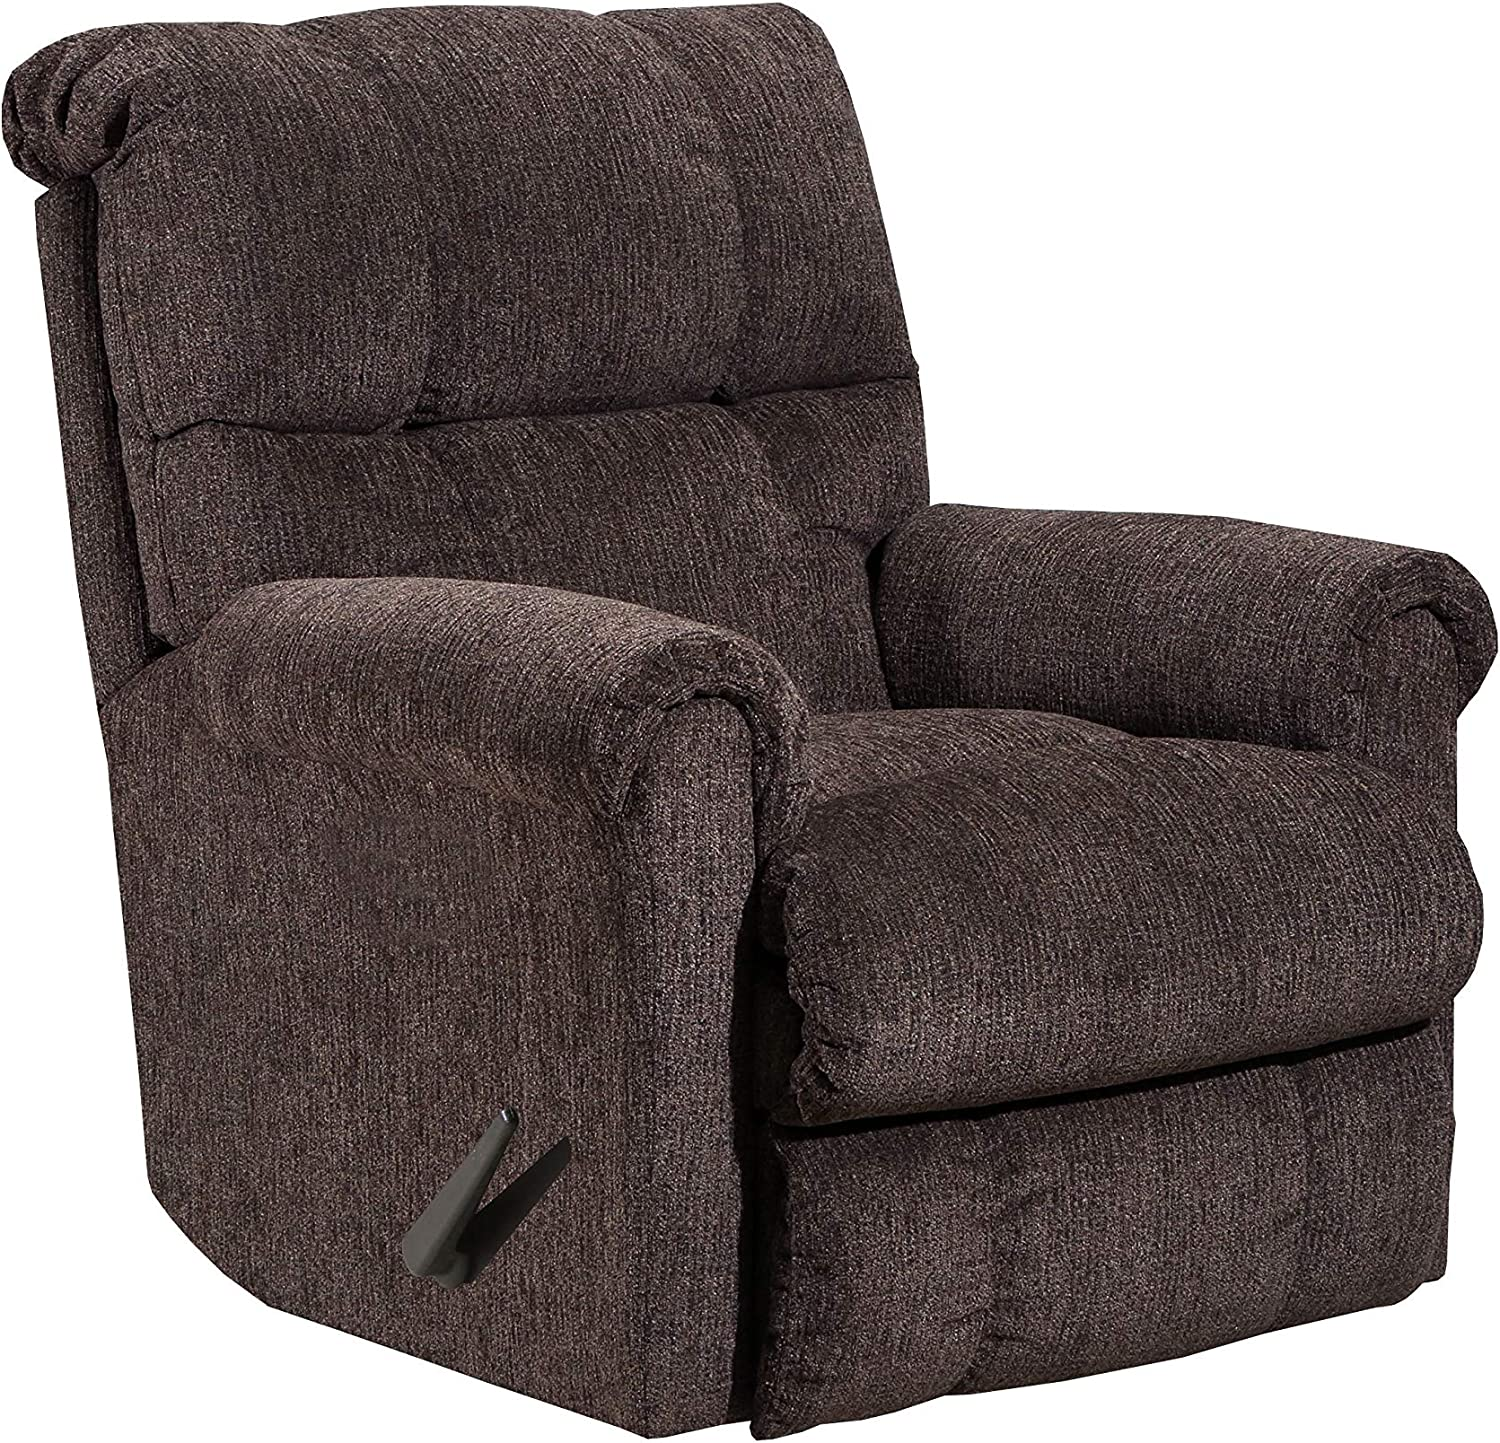 Lane Home Furnishings Glider Recliner